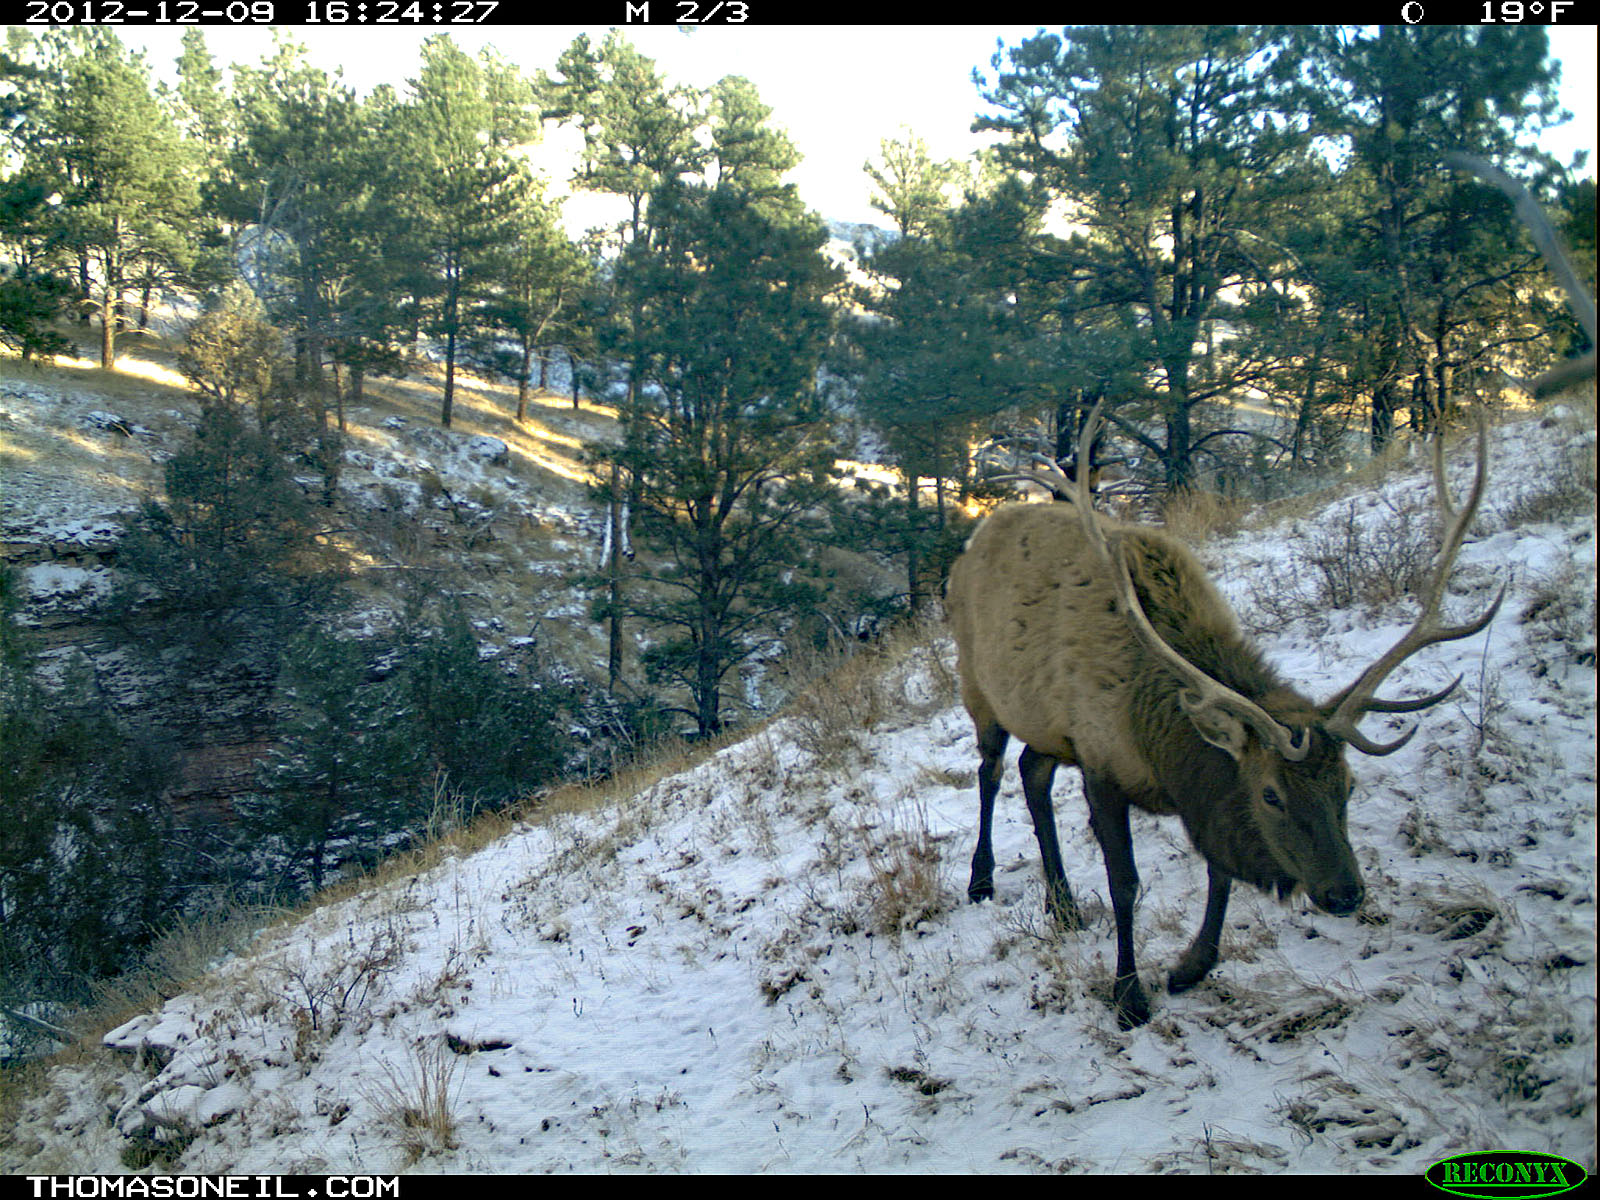 Elk, trailcam photo from Dec. 9, 2012, Wind Cave National Park, South Dakota.  Click for next photo.